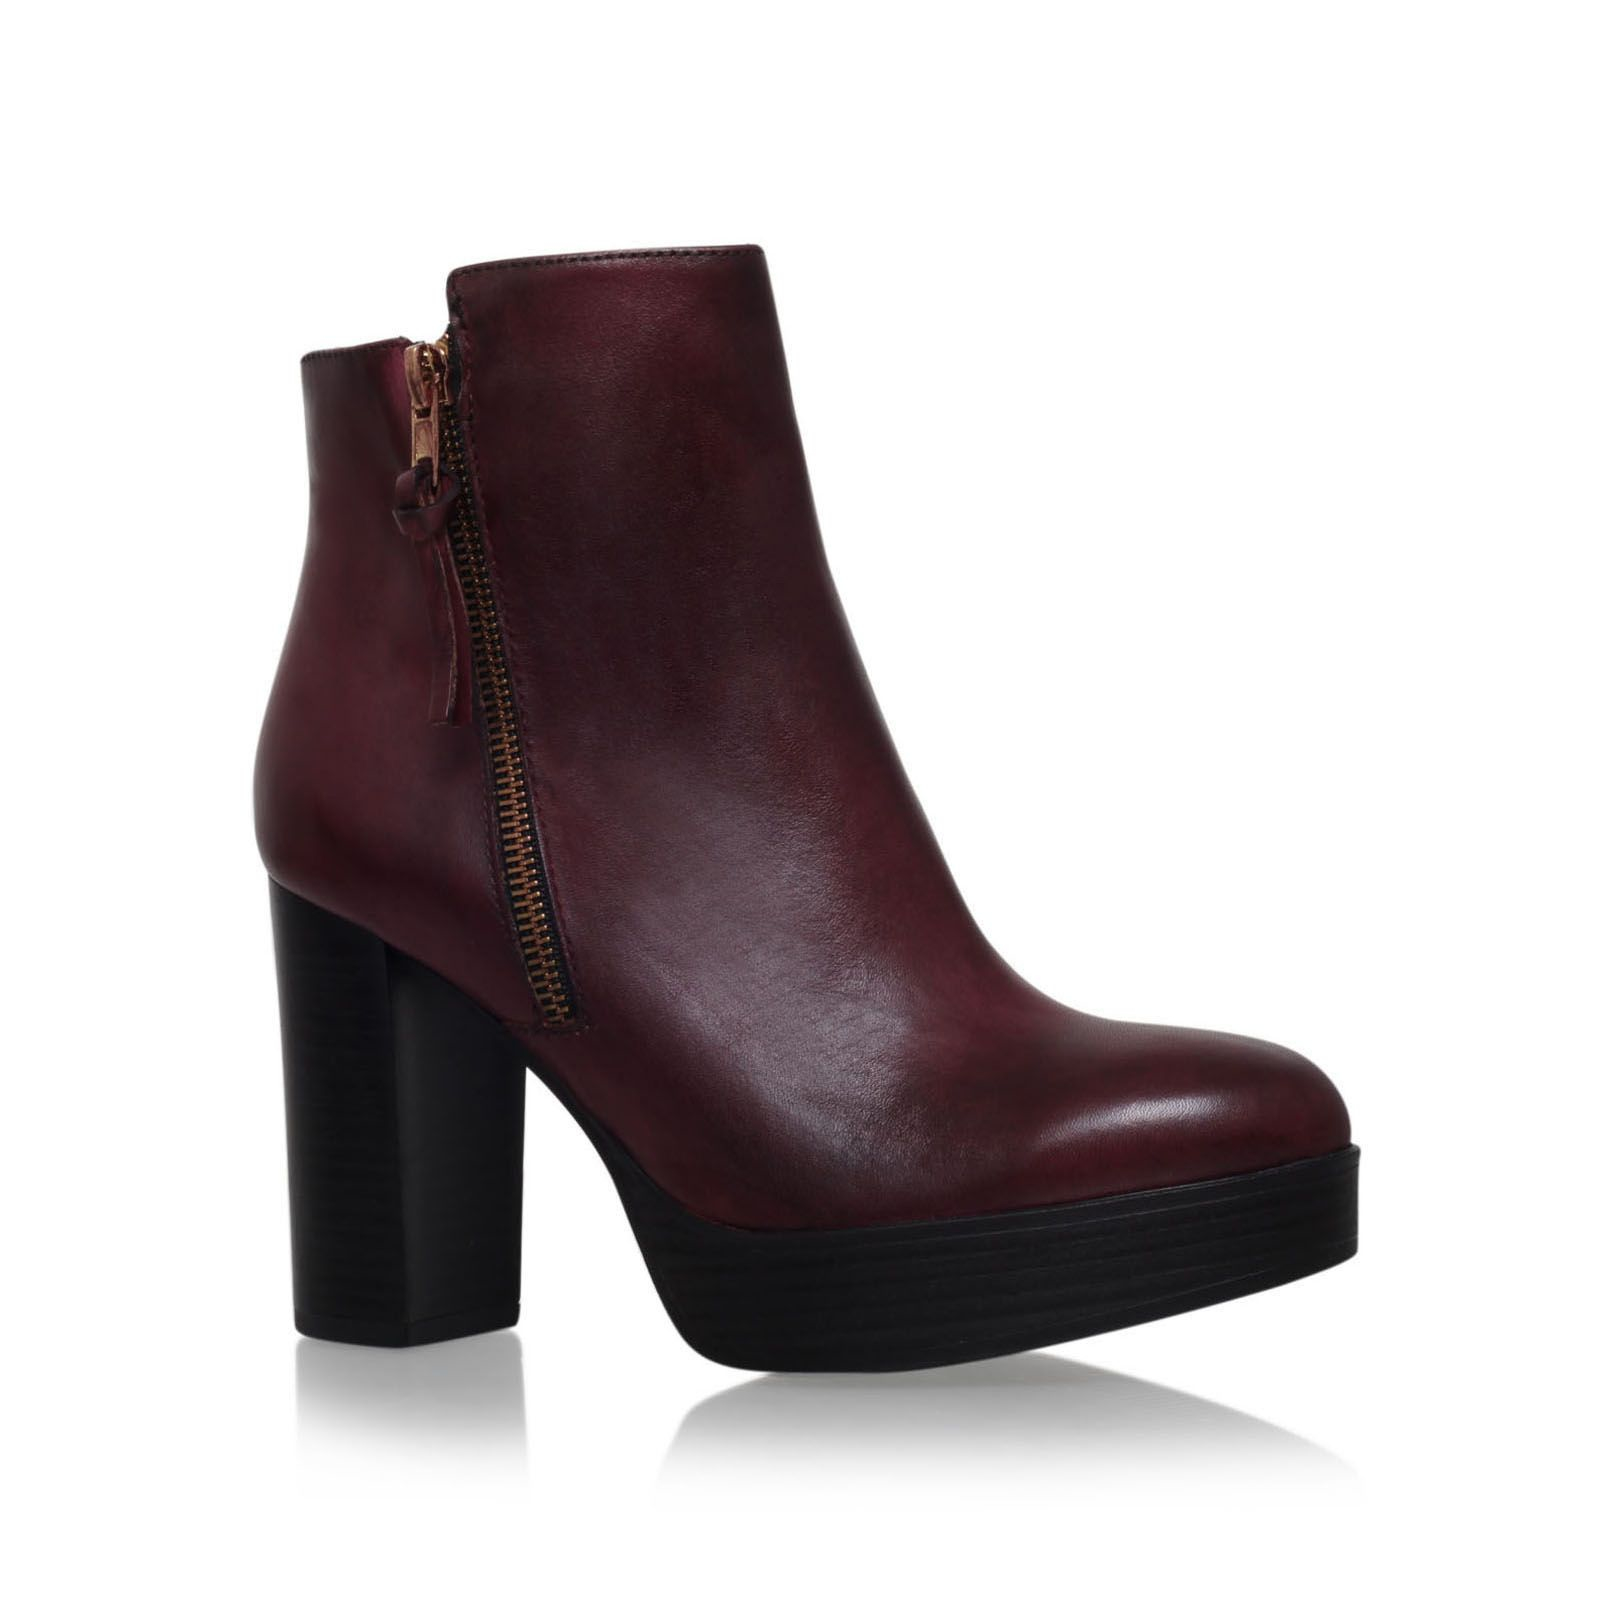 carvela kurt geiger supremo high block heel ankle boots in